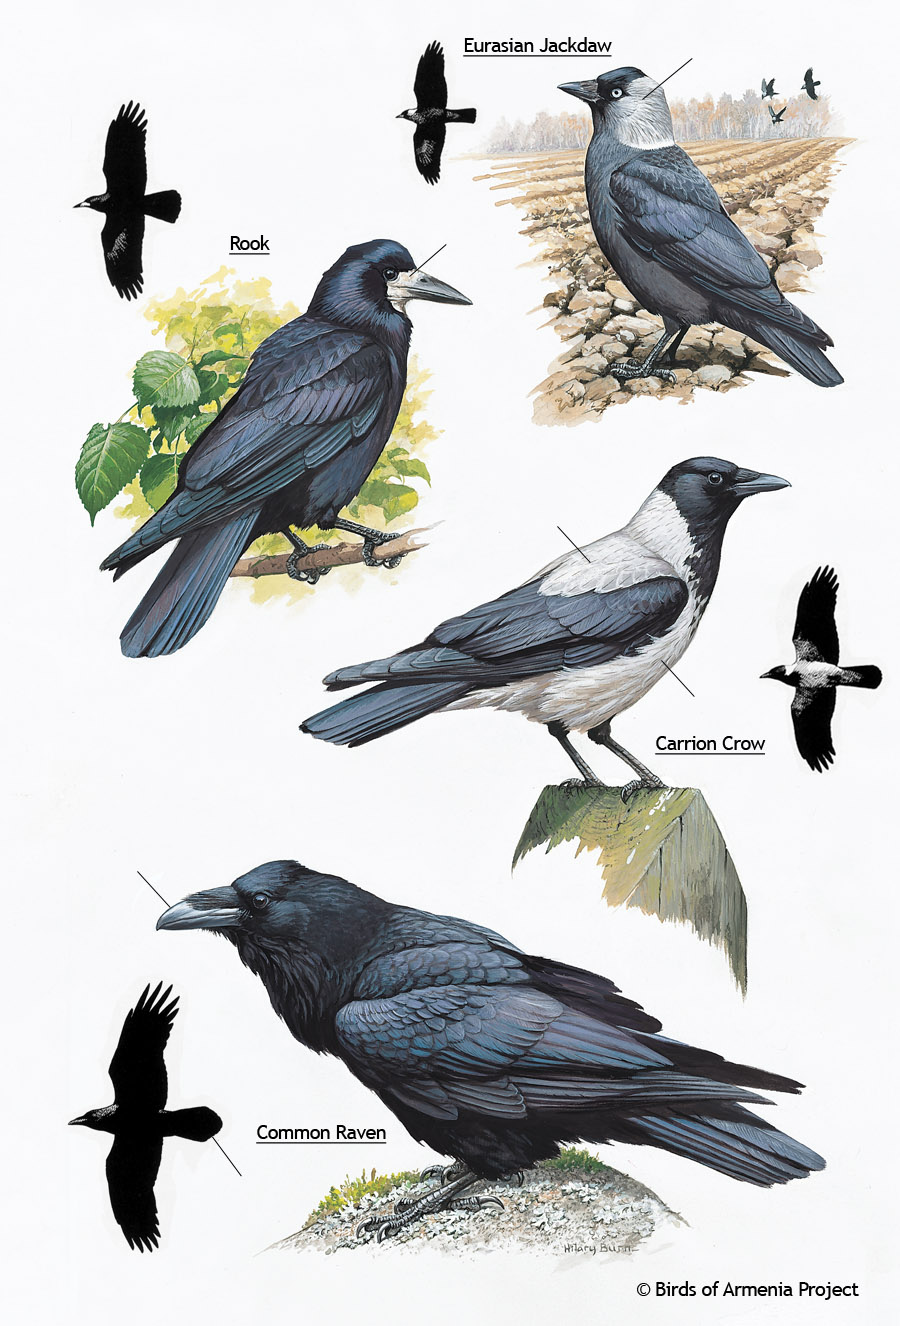 Jackdaws, Rooks, Crows and Ravens